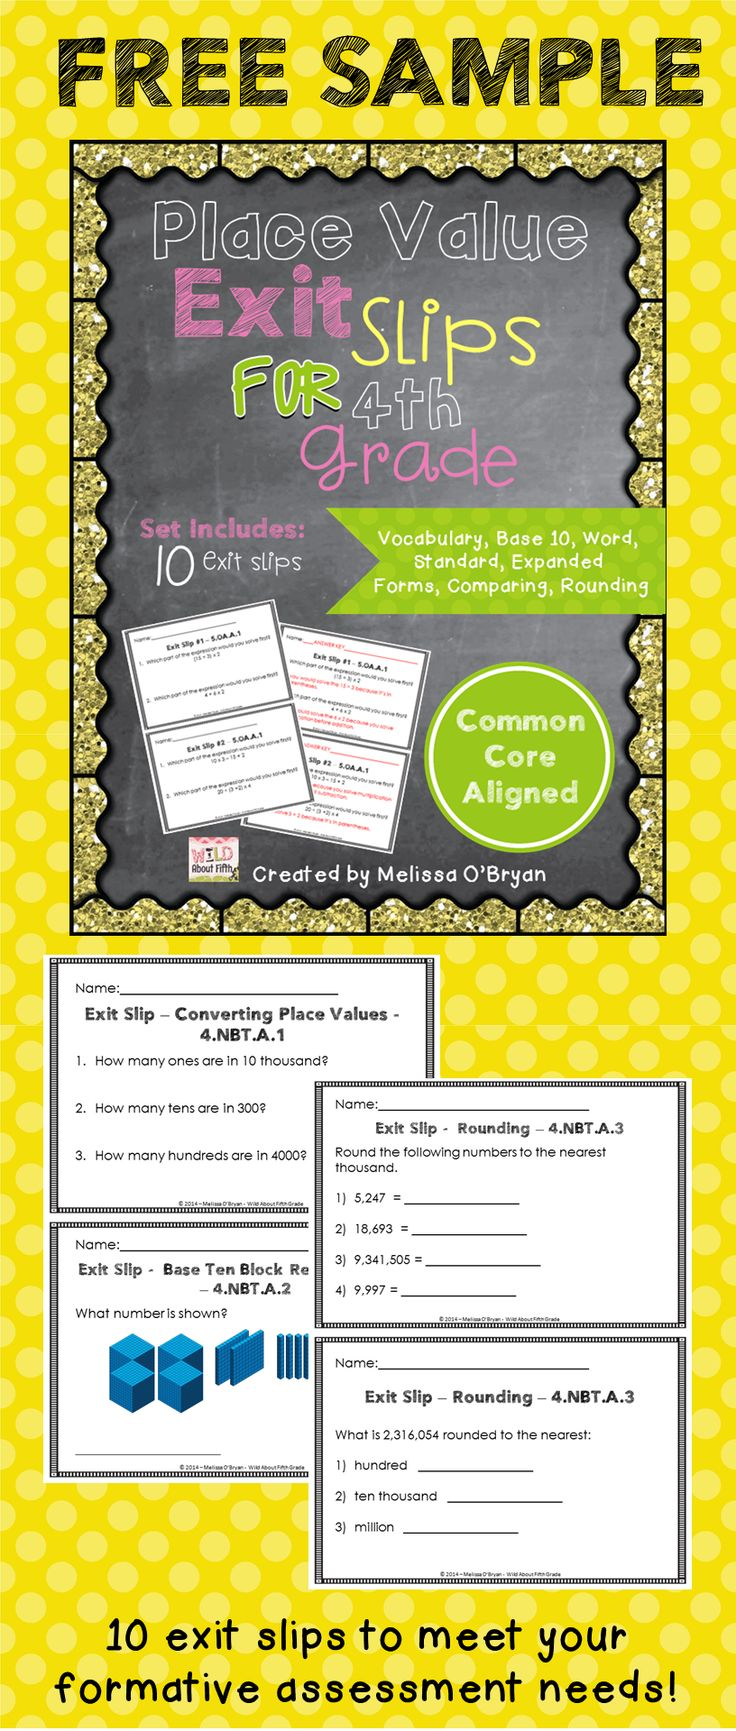 Interested in EXIT SLIPS? Try out this FREE SAMPLE of PLACE VALUE exit slips from my Exit Slips for the Whole Year - 4th Grade Bundle.  This FREEBIE includes 10 exit slips that cover vocabulary, patterns, word, standard, expanded form, base 10, converting, comparing and rounding - 4.NBT.A.1, 4.NBT.4.2, and 4.NBT.4.3,  #wildaboutfifthgrade